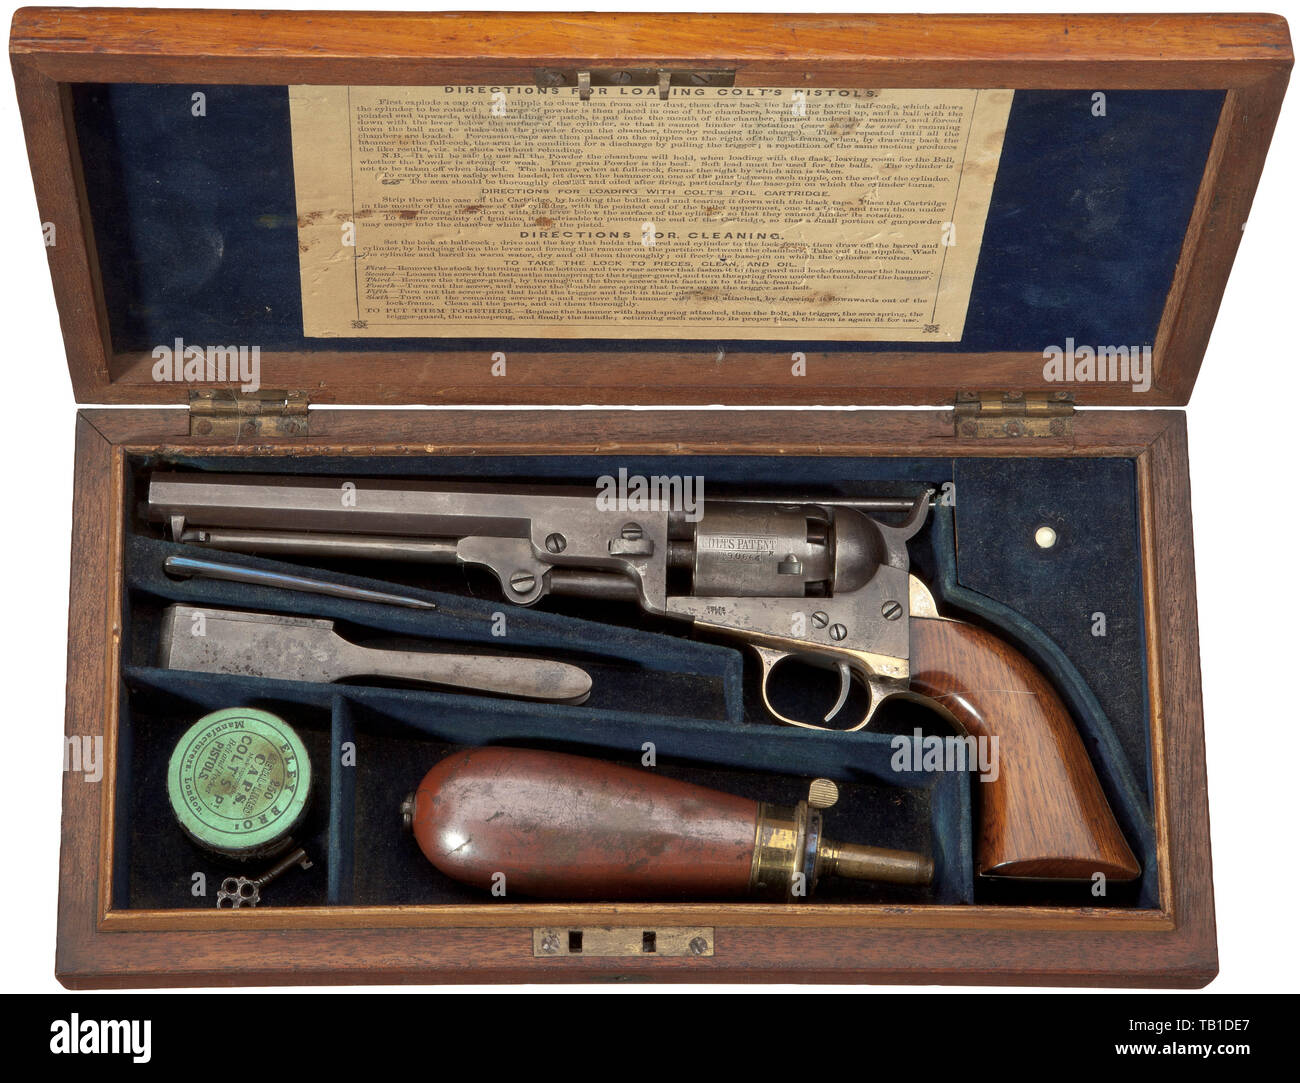 Pocket Revolver Stock Photos & Pocket Revolver Stock Images - Alamy